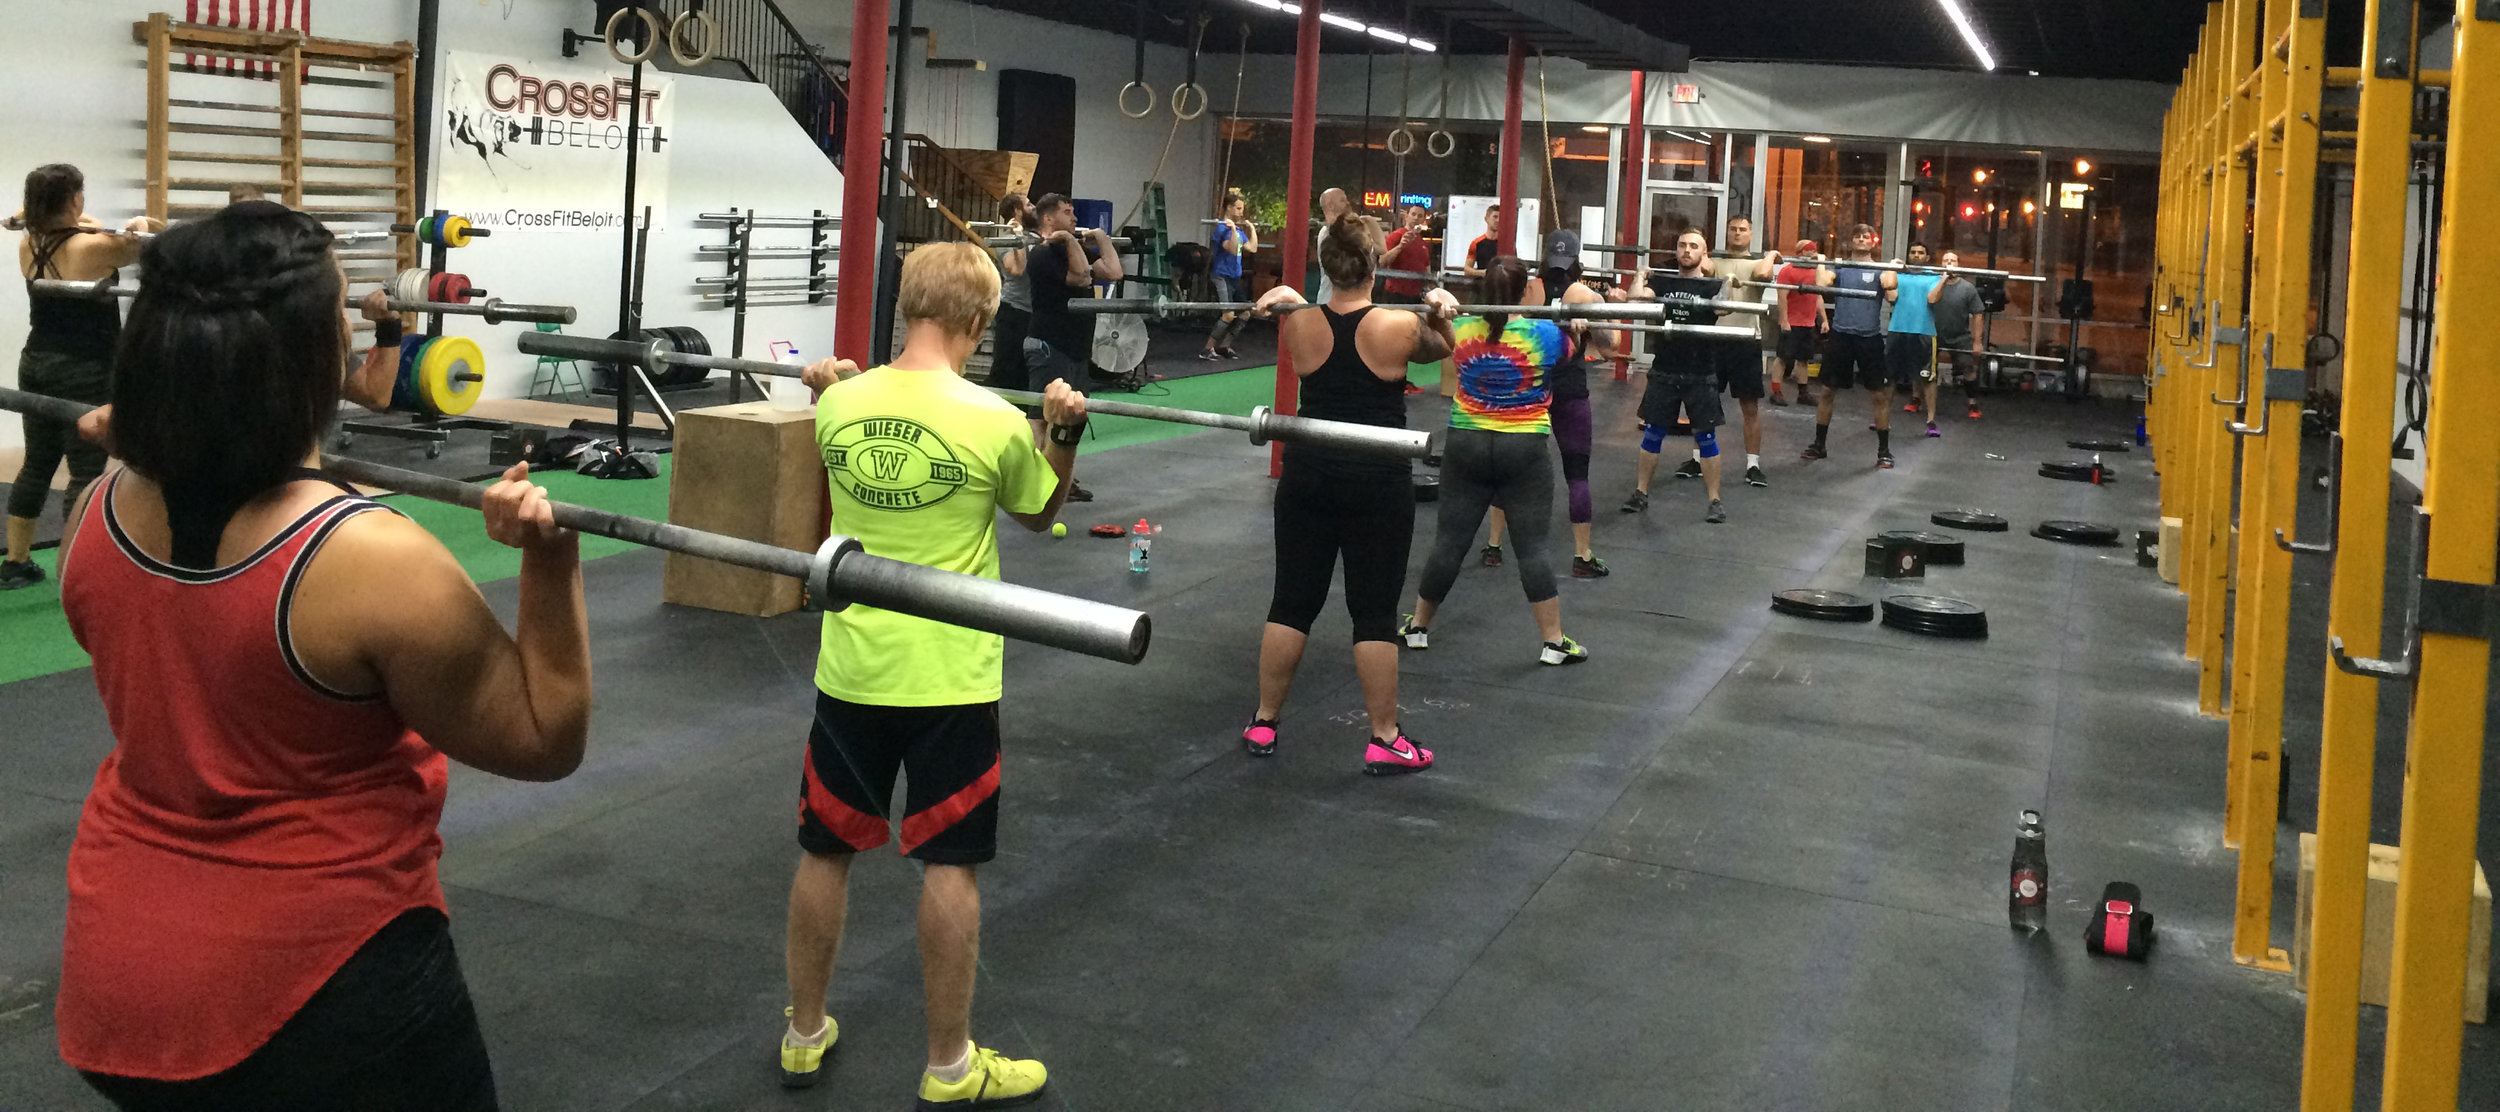 Head Coach and Owner Scott instructing a group CrossFit class